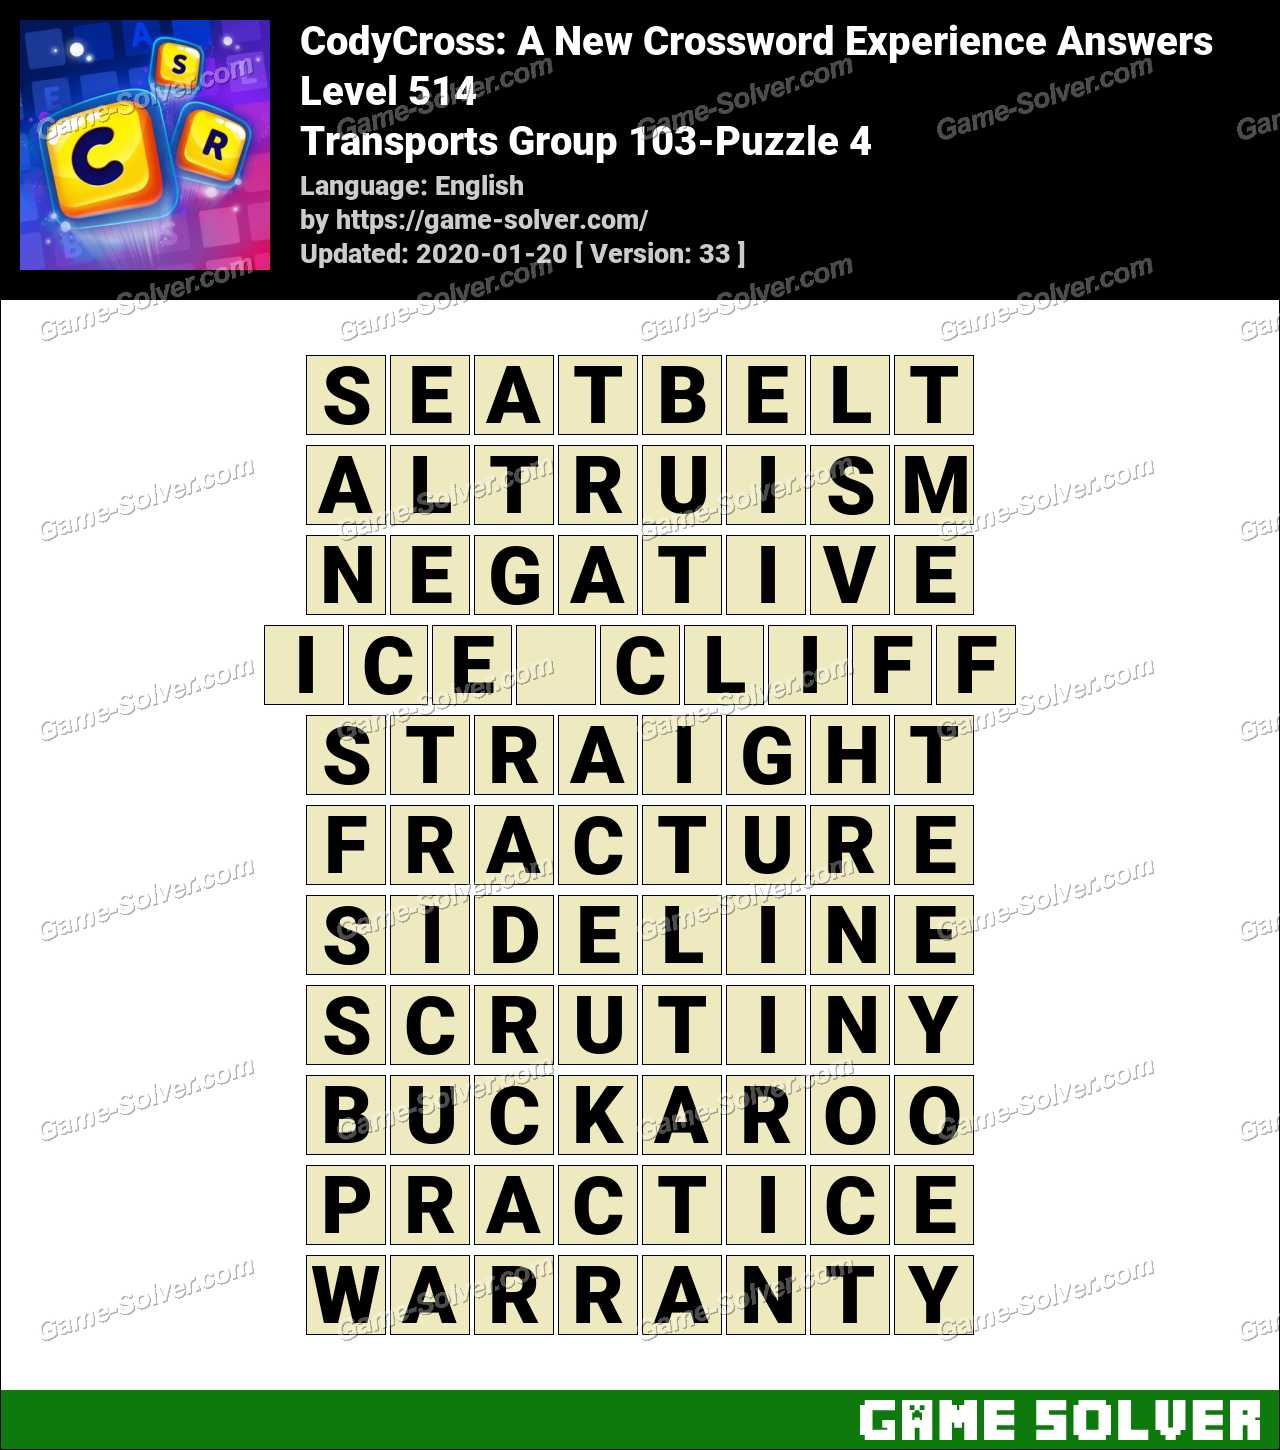 CodyCross Transports Group 103-Puzzle 4 Answers